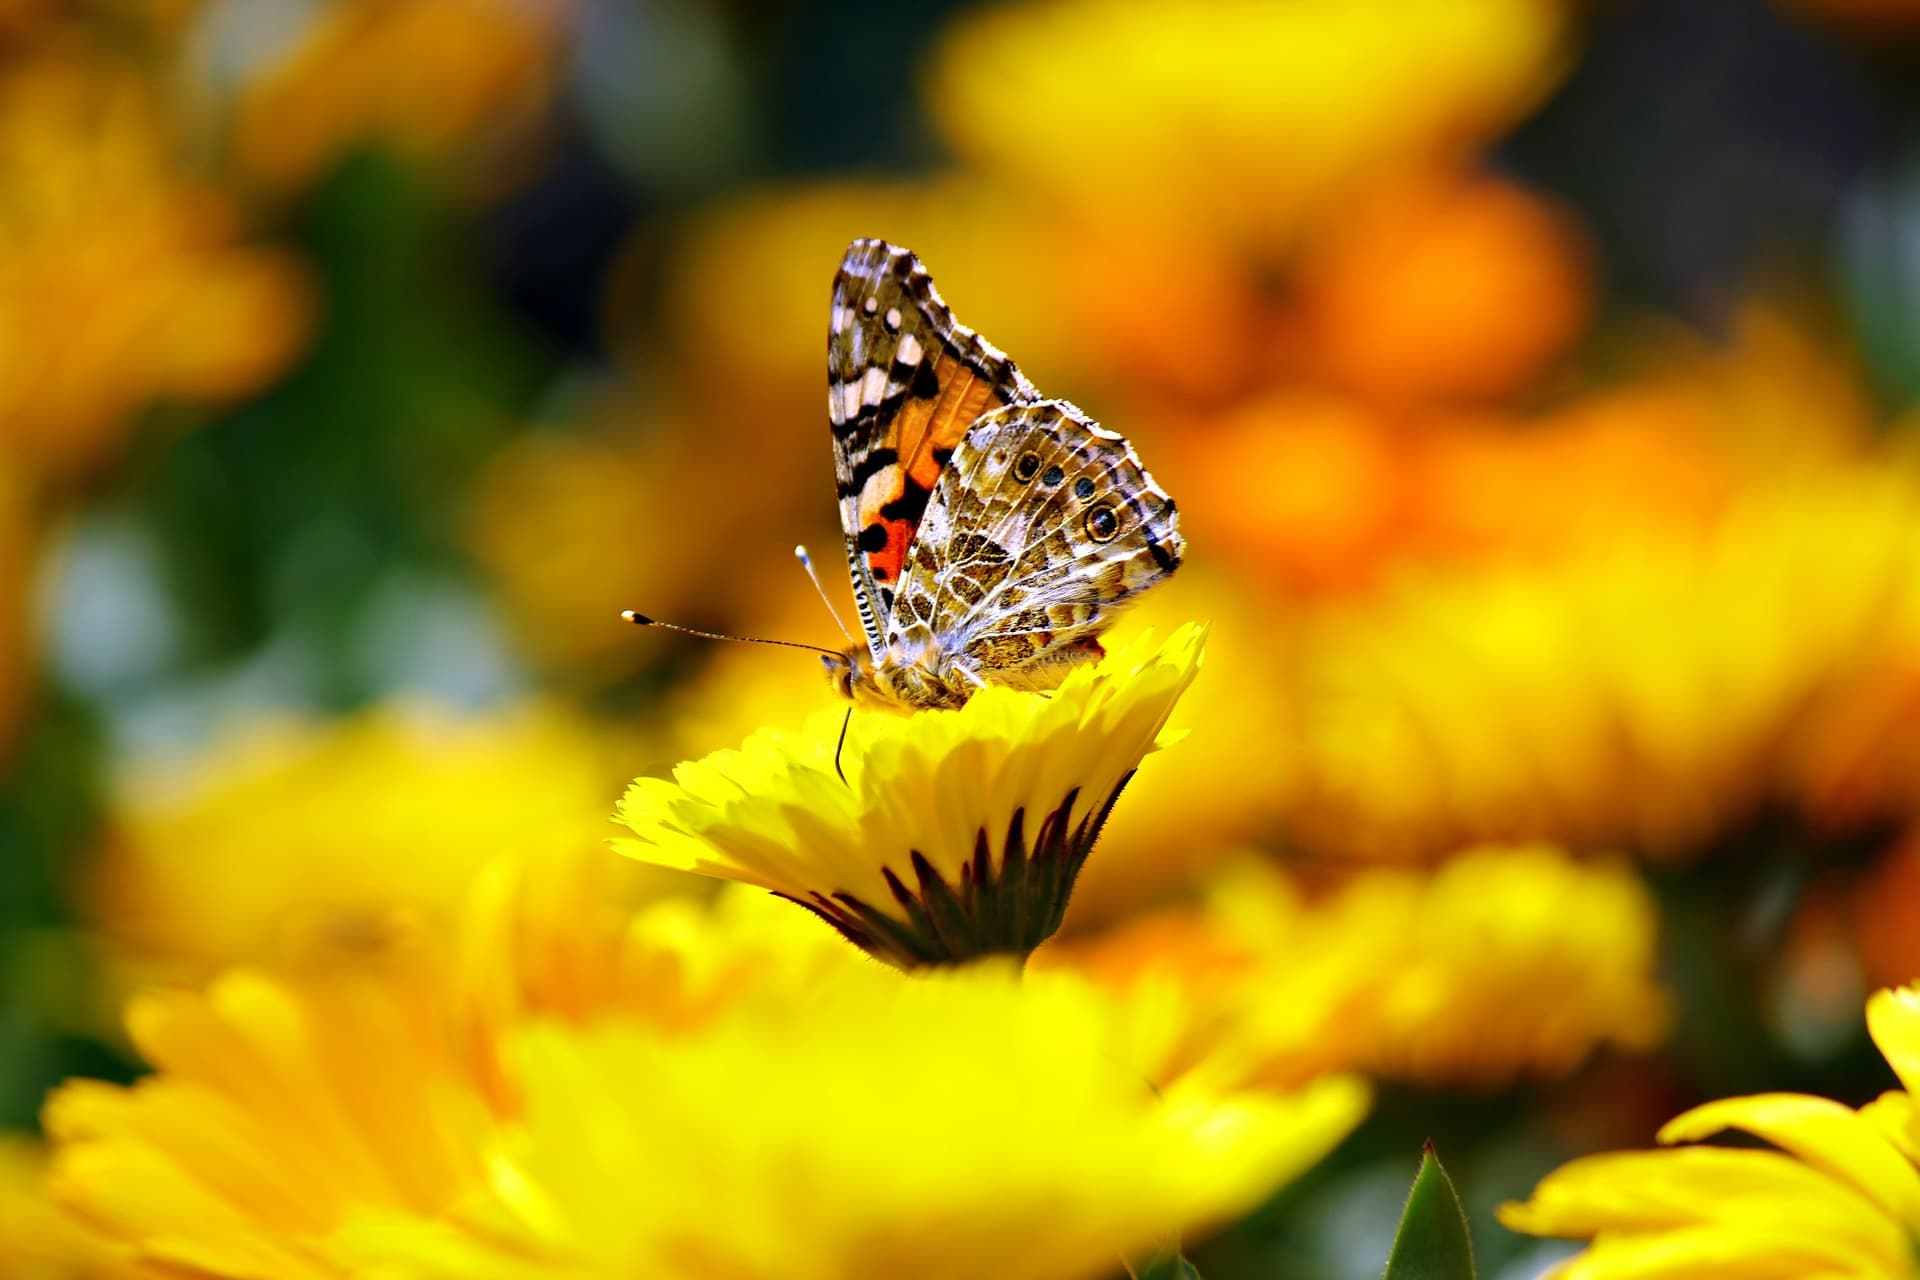 Brown and orange common moth on yellow flowers